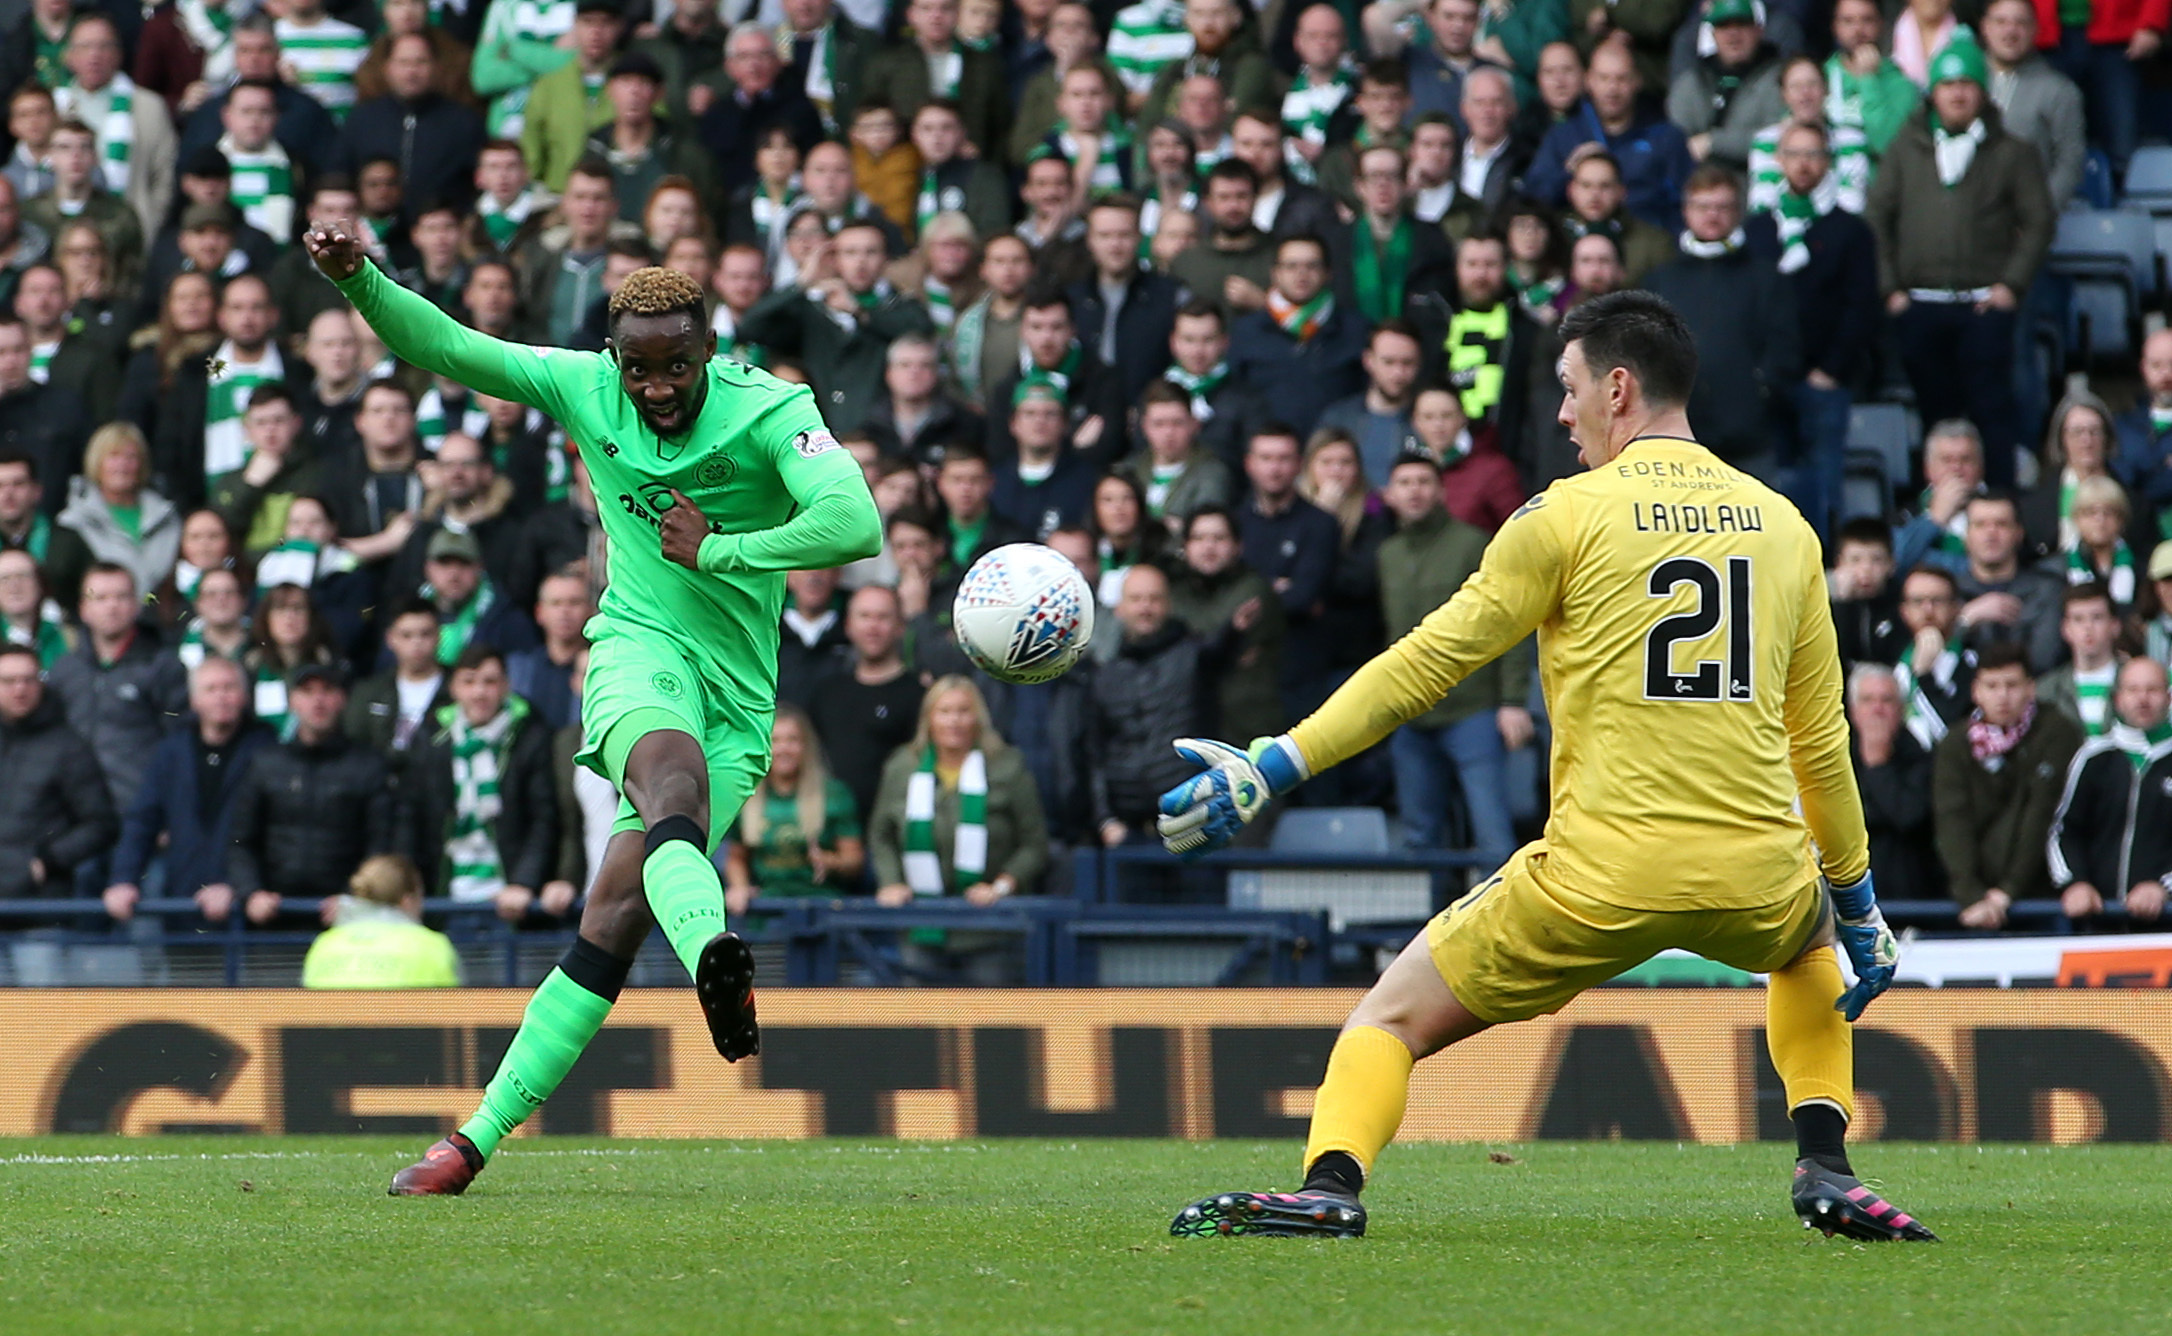 Celtic's Moussa Dembele scores his side's fourth goal of the game during the Betfred Cup, semi-final match at Hampden Park, Glasgow. PRESS ASSOCIATION Photo. Picture date: Saturday October 21, 2017. See PA story SOCCER Hibernian. Photo credit shou